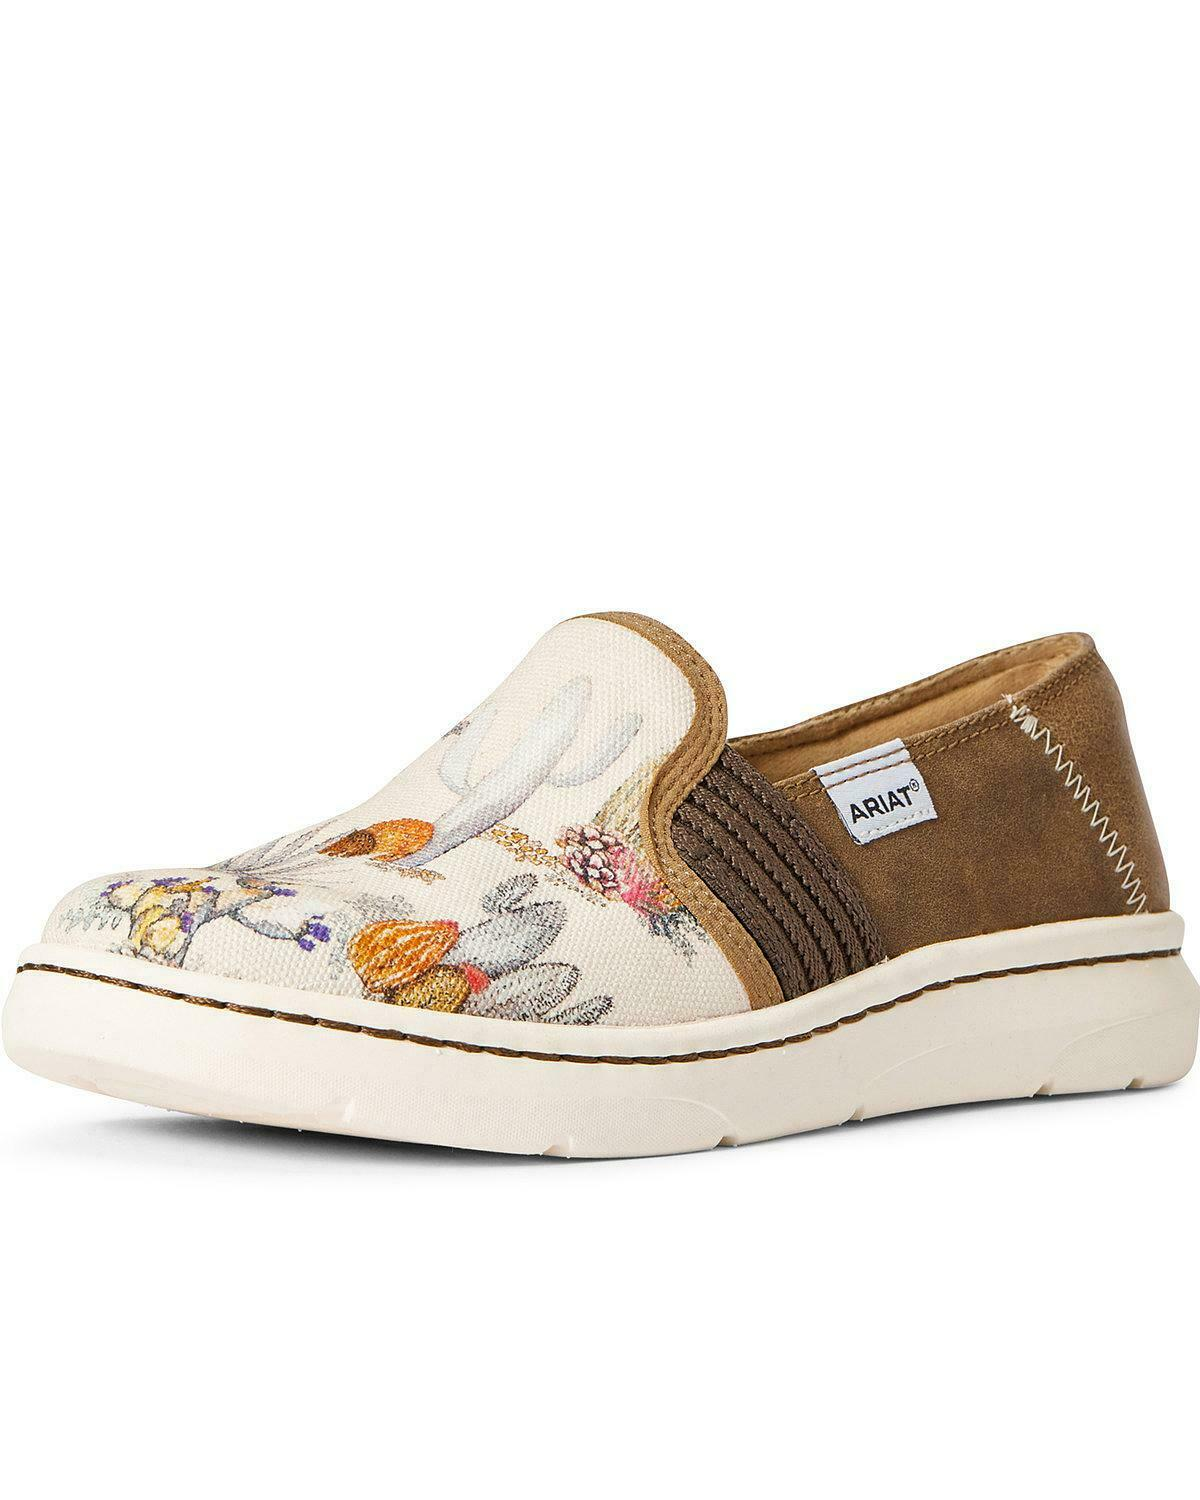 Ariat Women's Ryder Cactus Watercolor Slip-On Shoes - Round Toe - 10033918